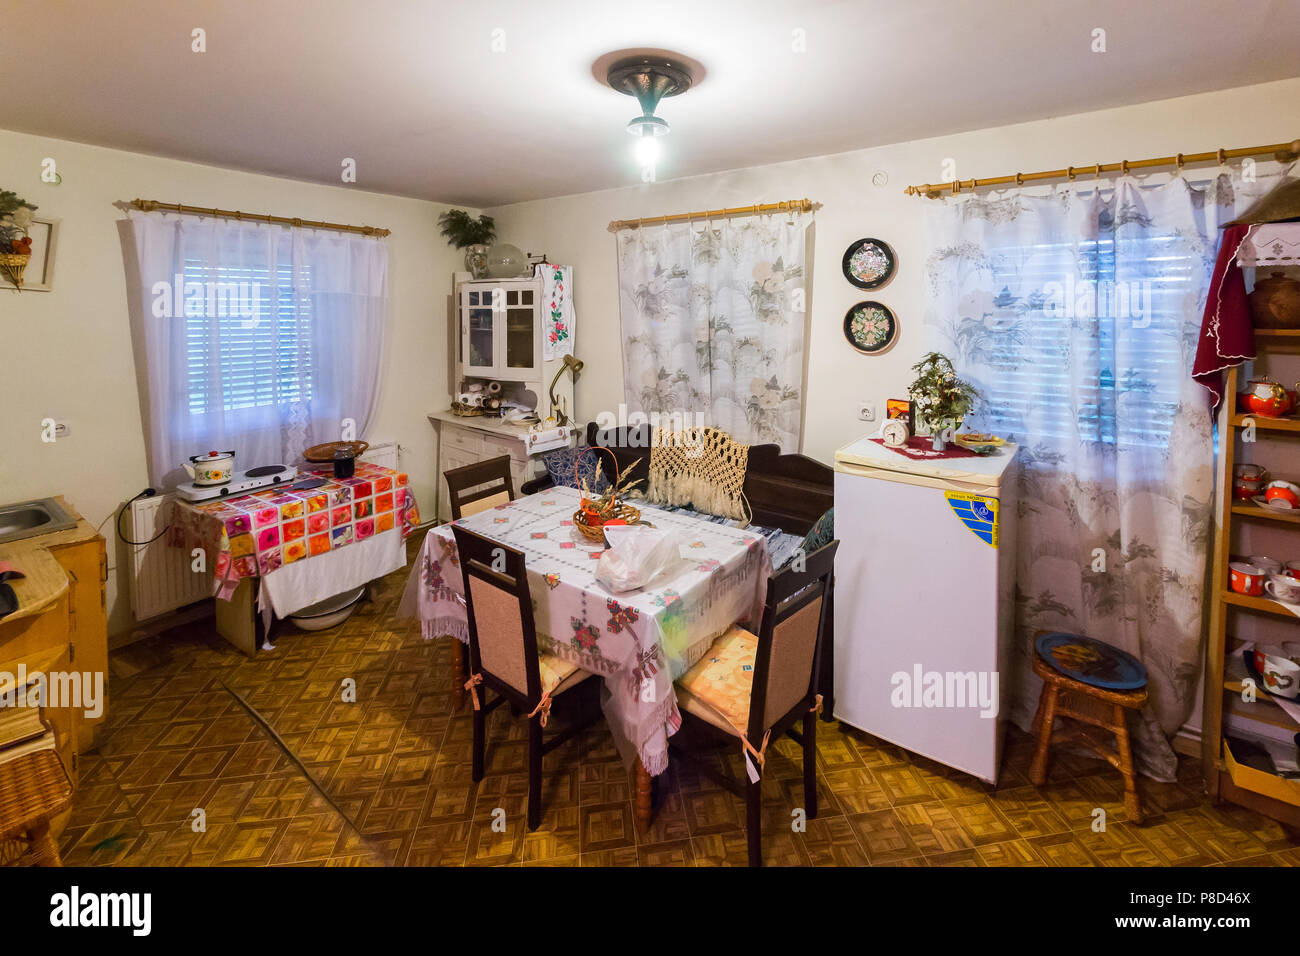 kitchen in a communal apartment with a small table in the ...